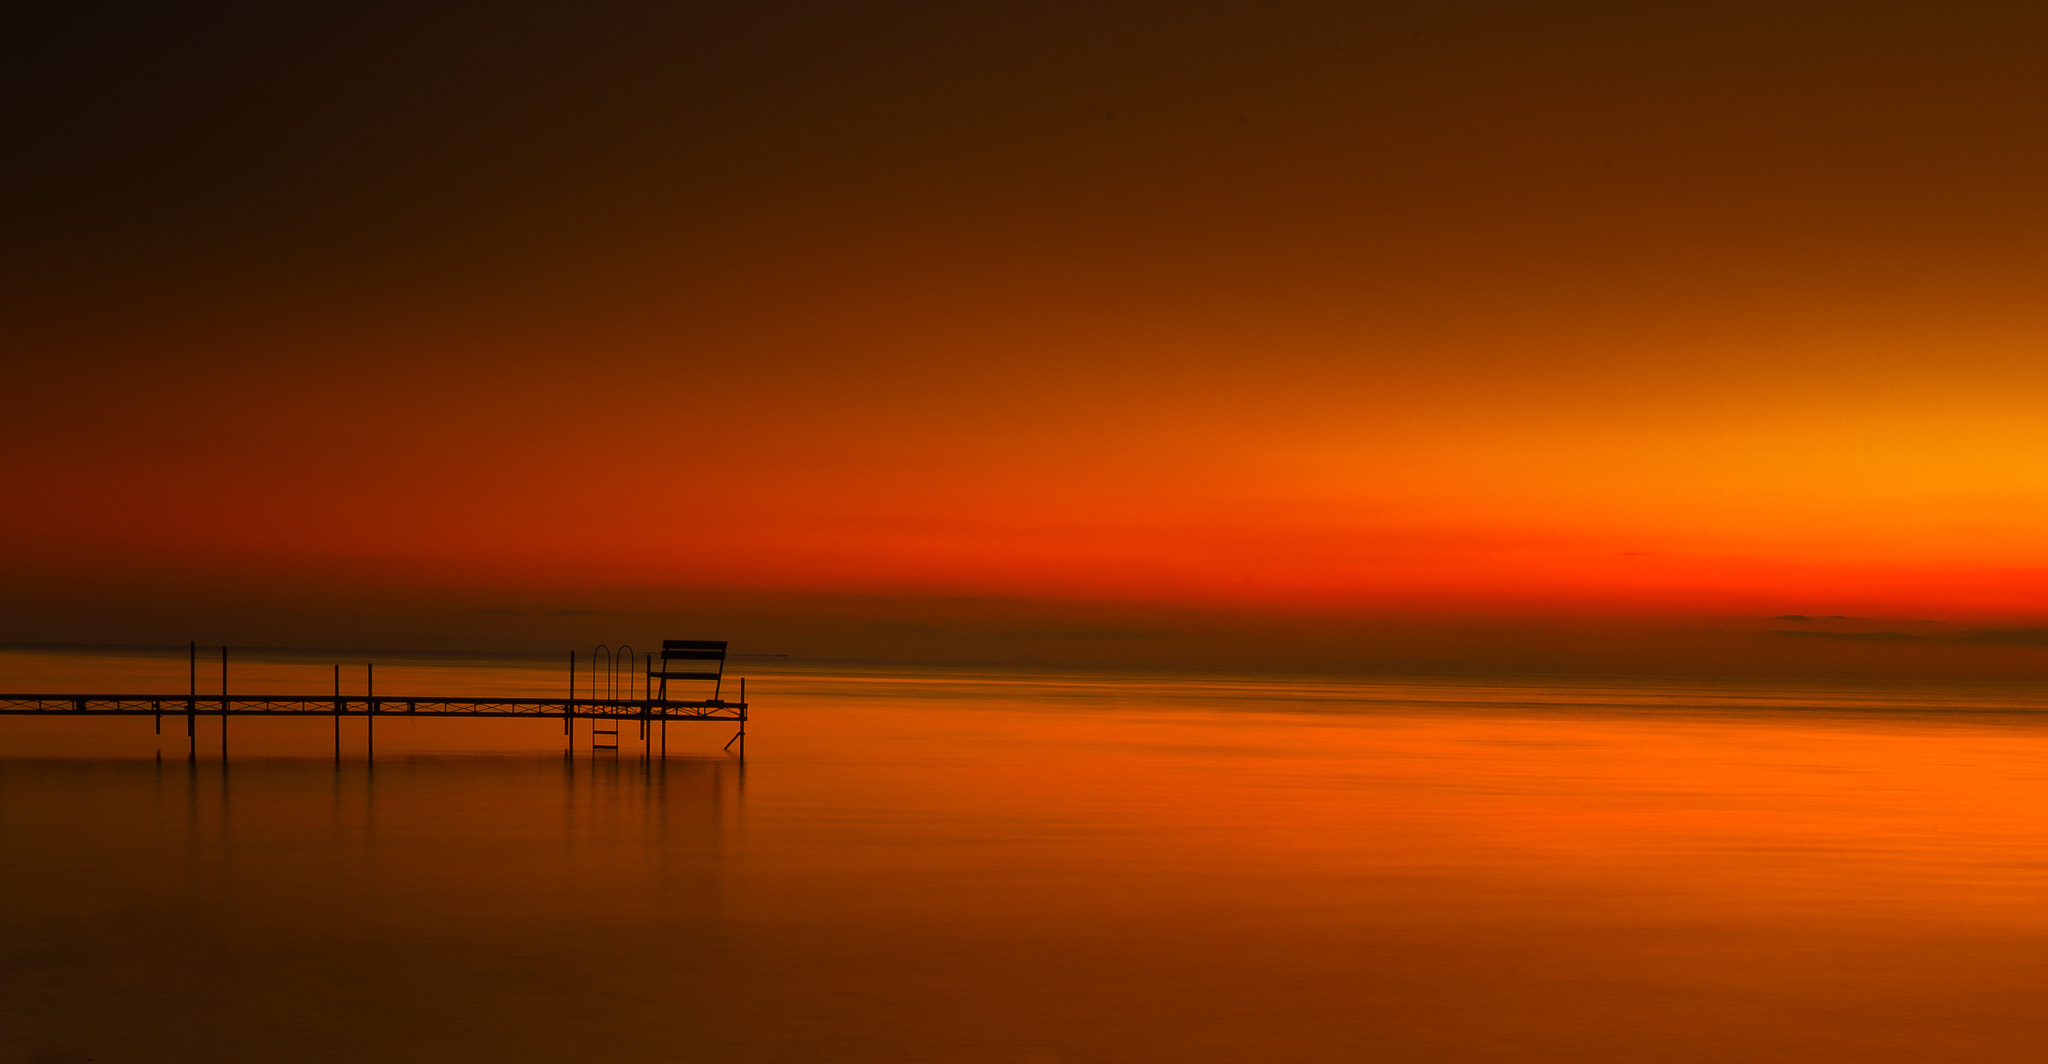 Photograph Serenity by Brian Behling on 500px